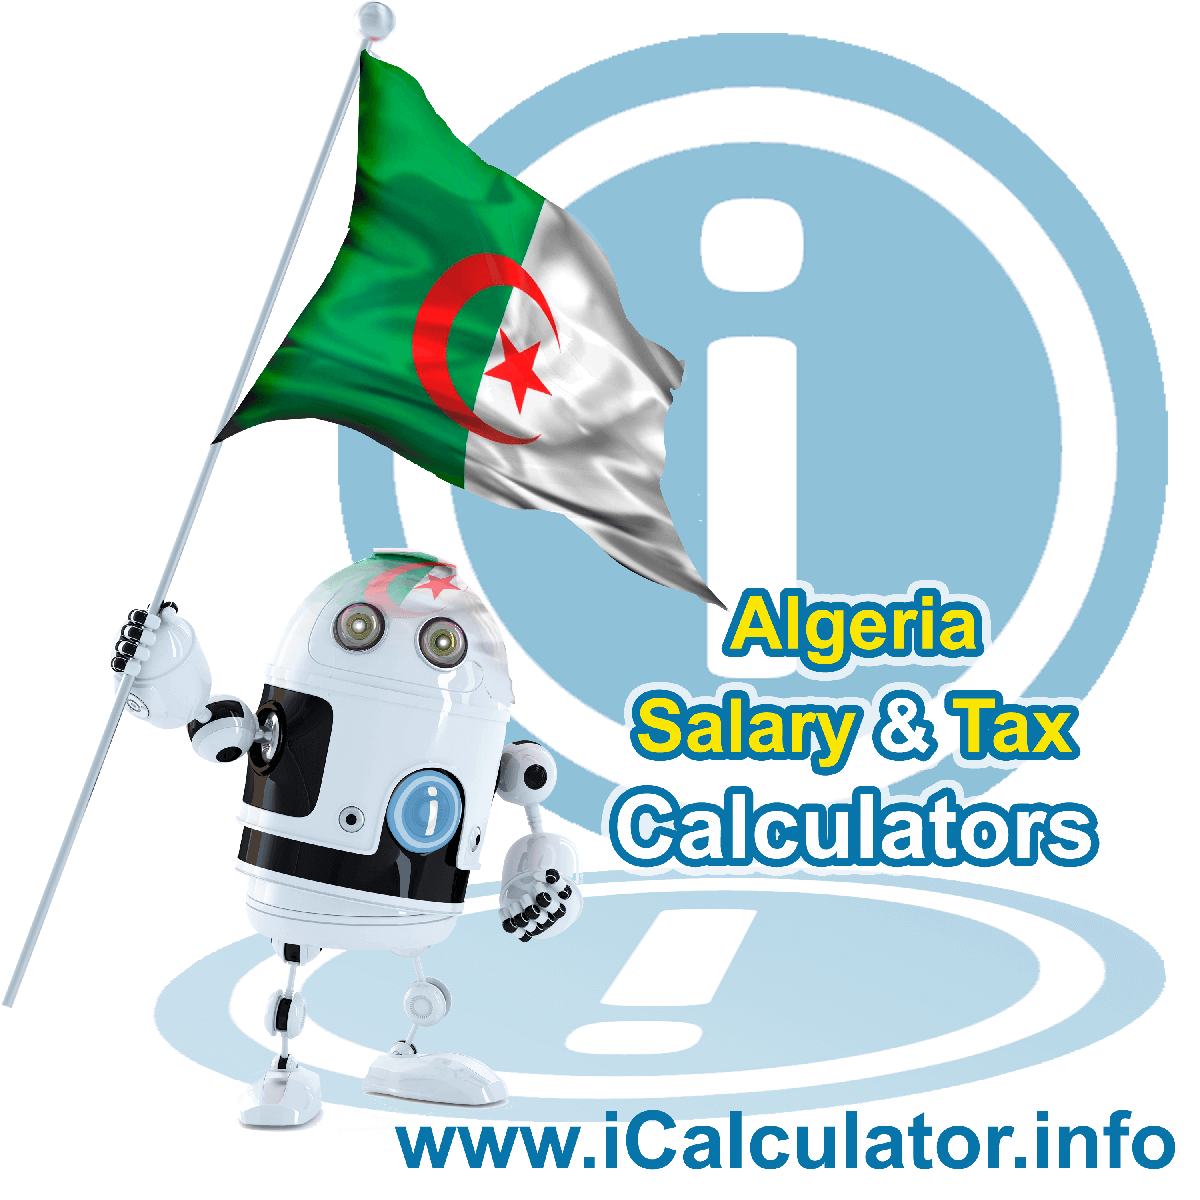 Algeria Salary Calculator. This image shows the Algeria flag and information relating to the income tax formula for the Algeria Salary Calculator